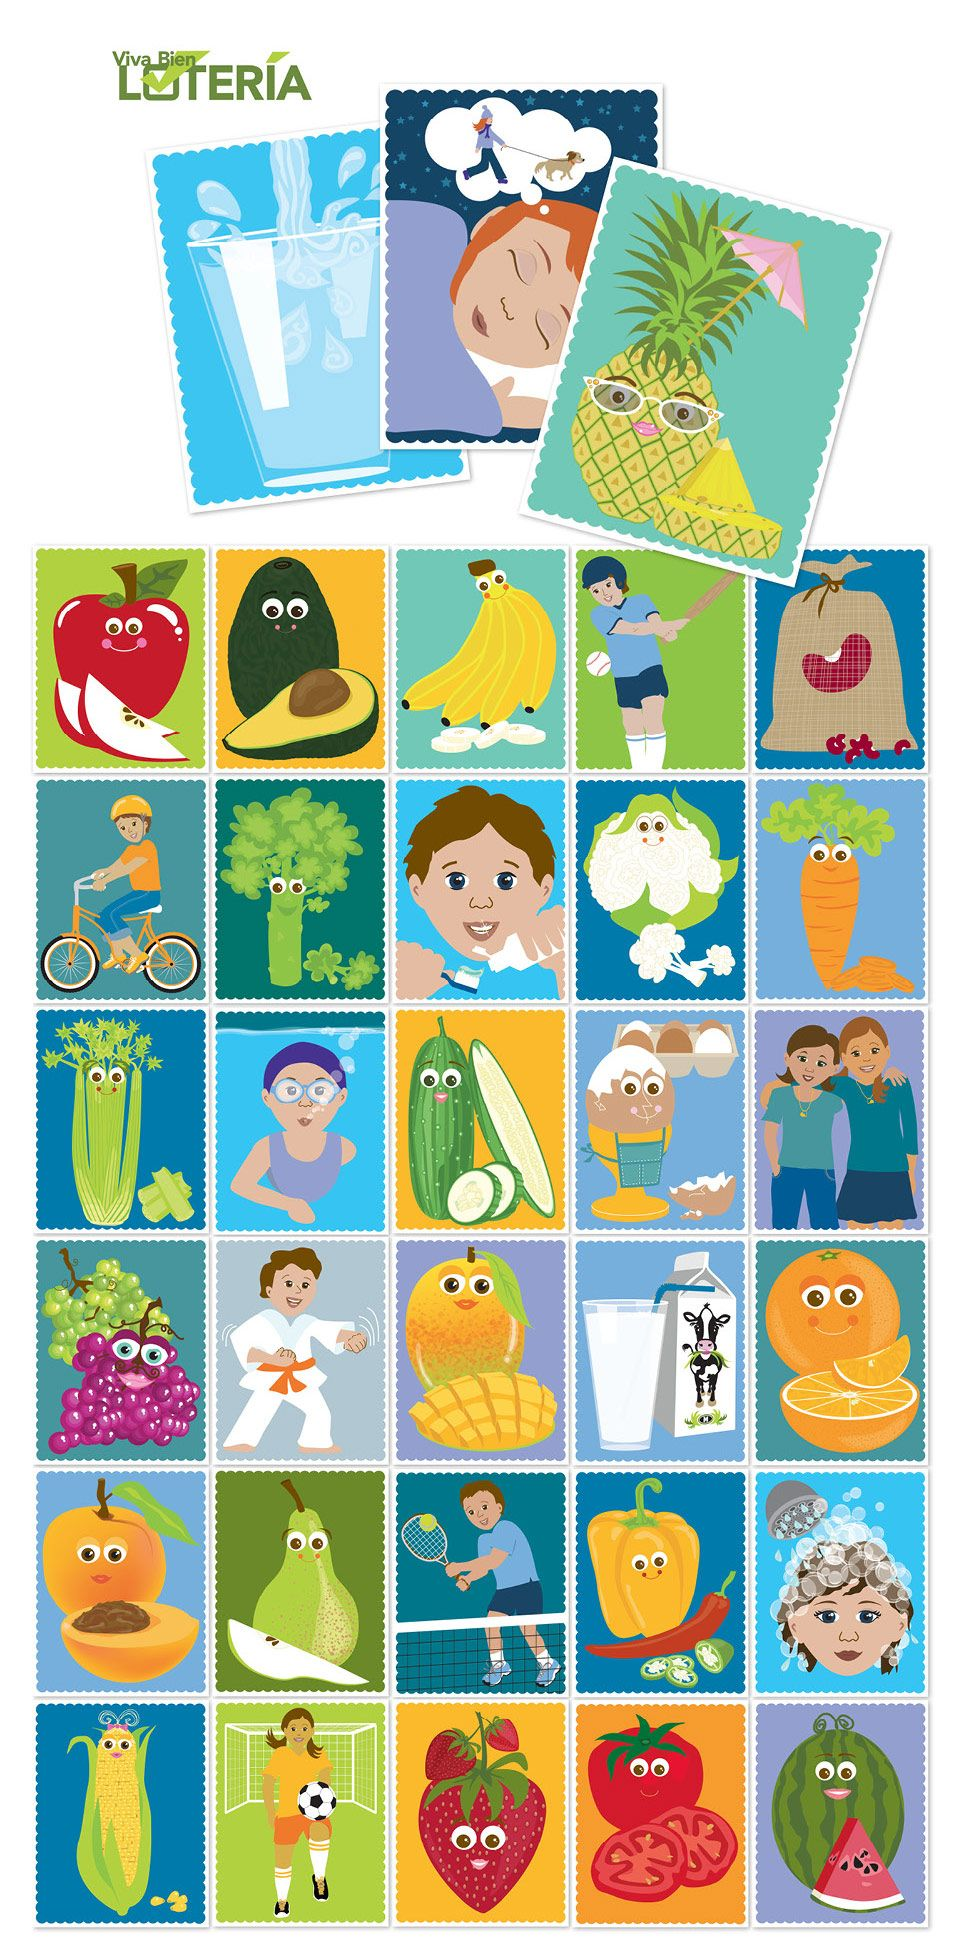 Loteria  Loteria is a children's game that is very similar to Bingo. This game is used to spread health information to children and their parents during community events.